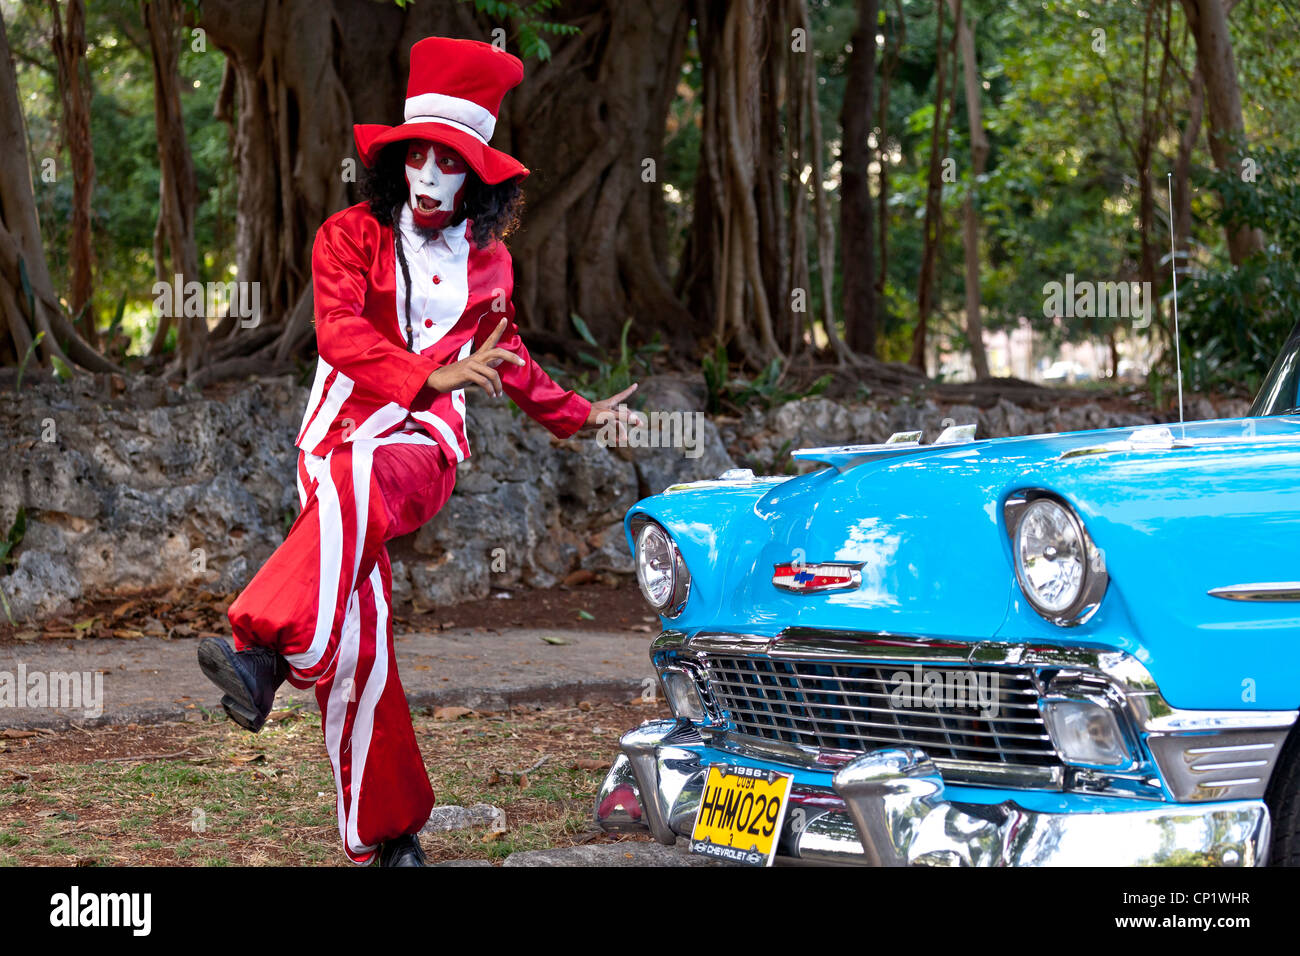 A Cuban Mime strikes a pose in front of a restored 1955 Chevy BelAir - Stock Image